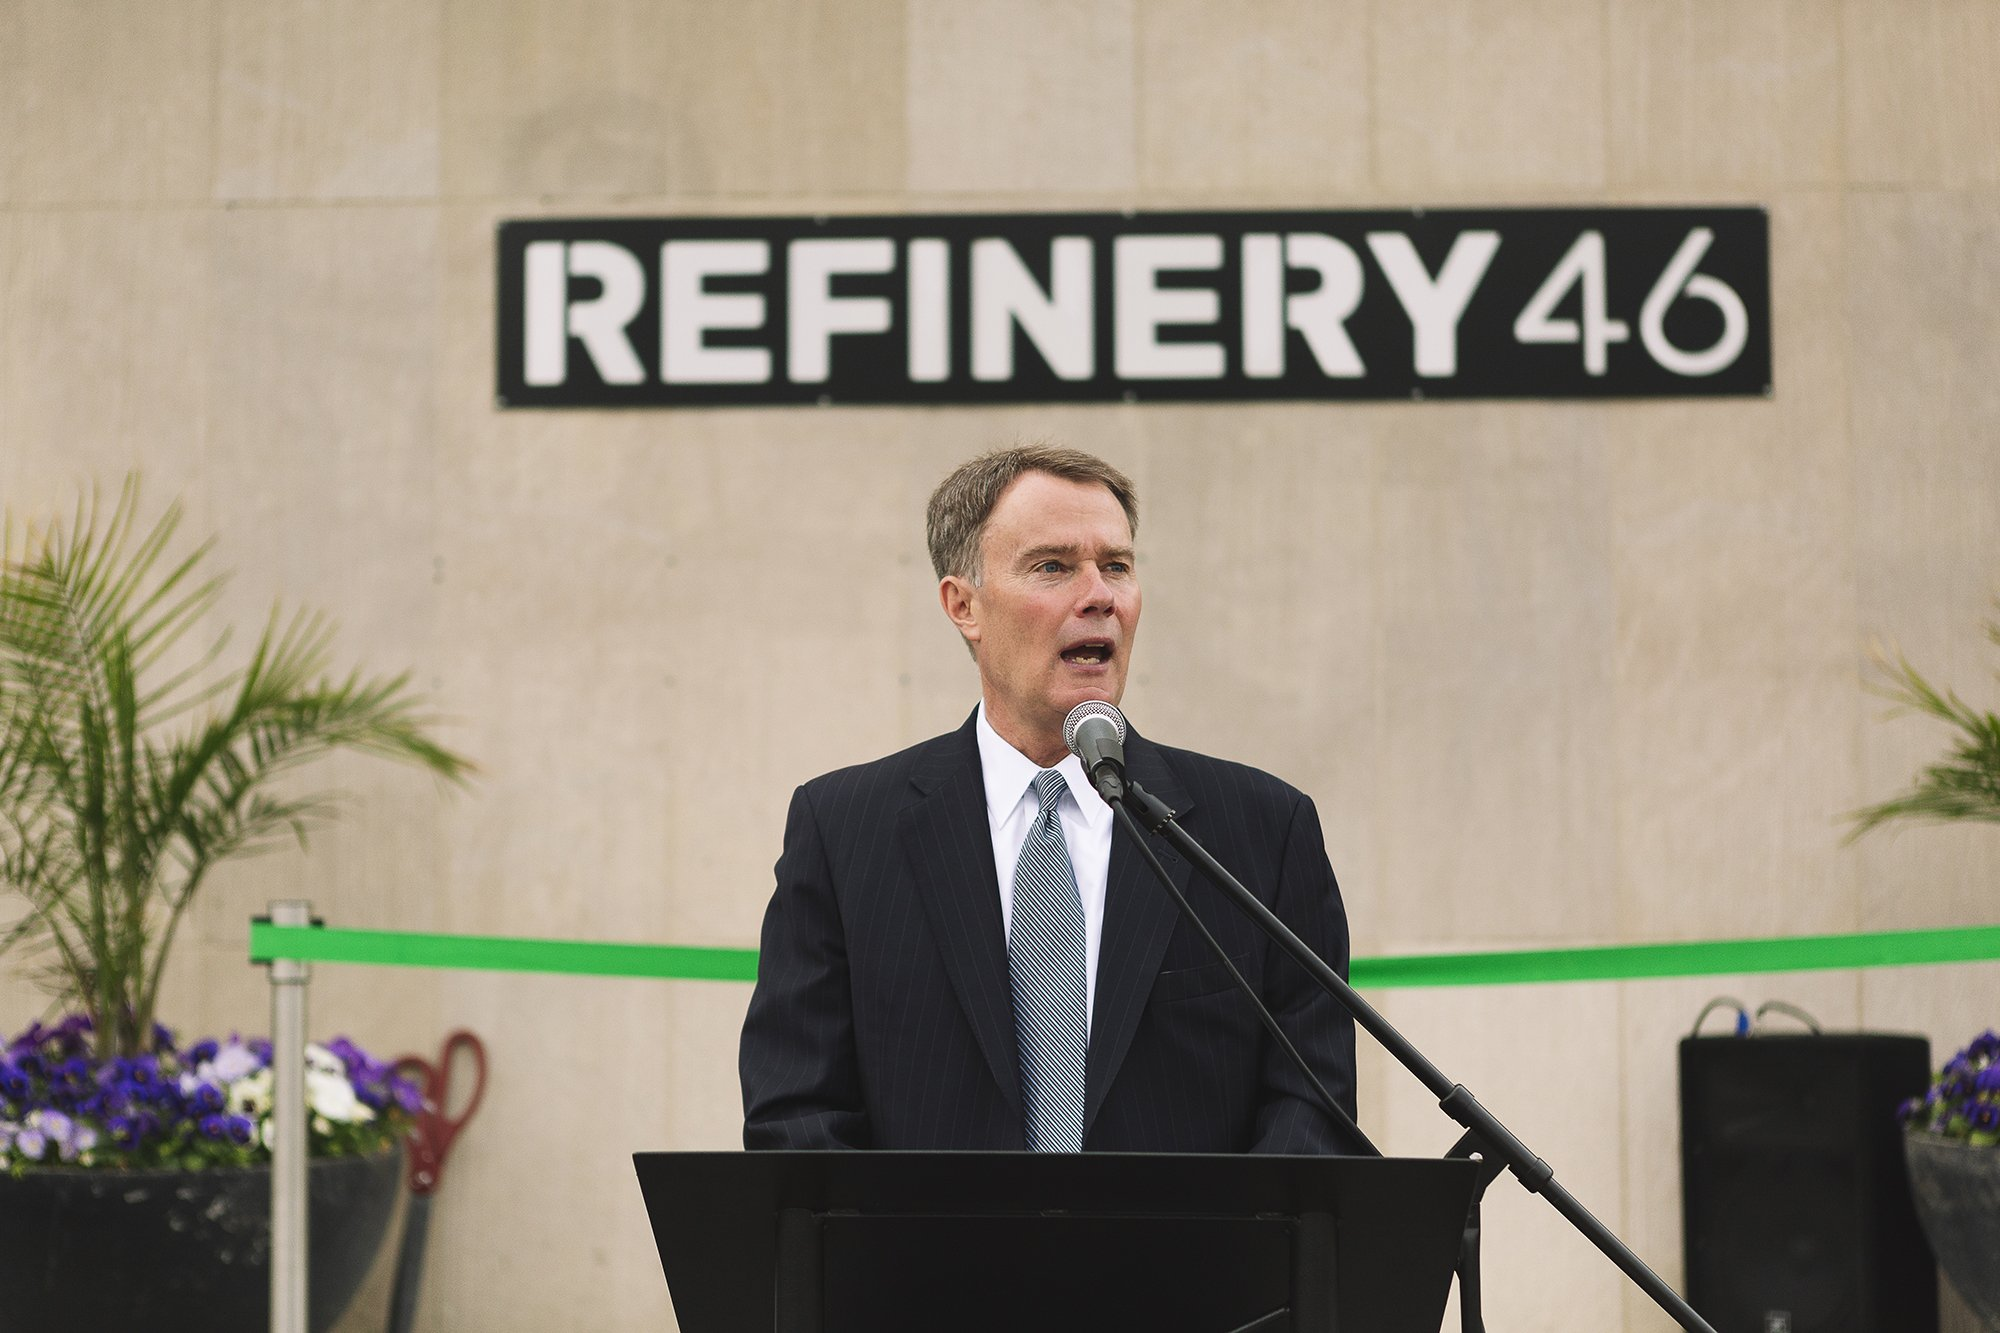 Corporate Event Photography - Refinery 46 Ribbon Cutting - Indianapolis Mayor Hogsett - 23